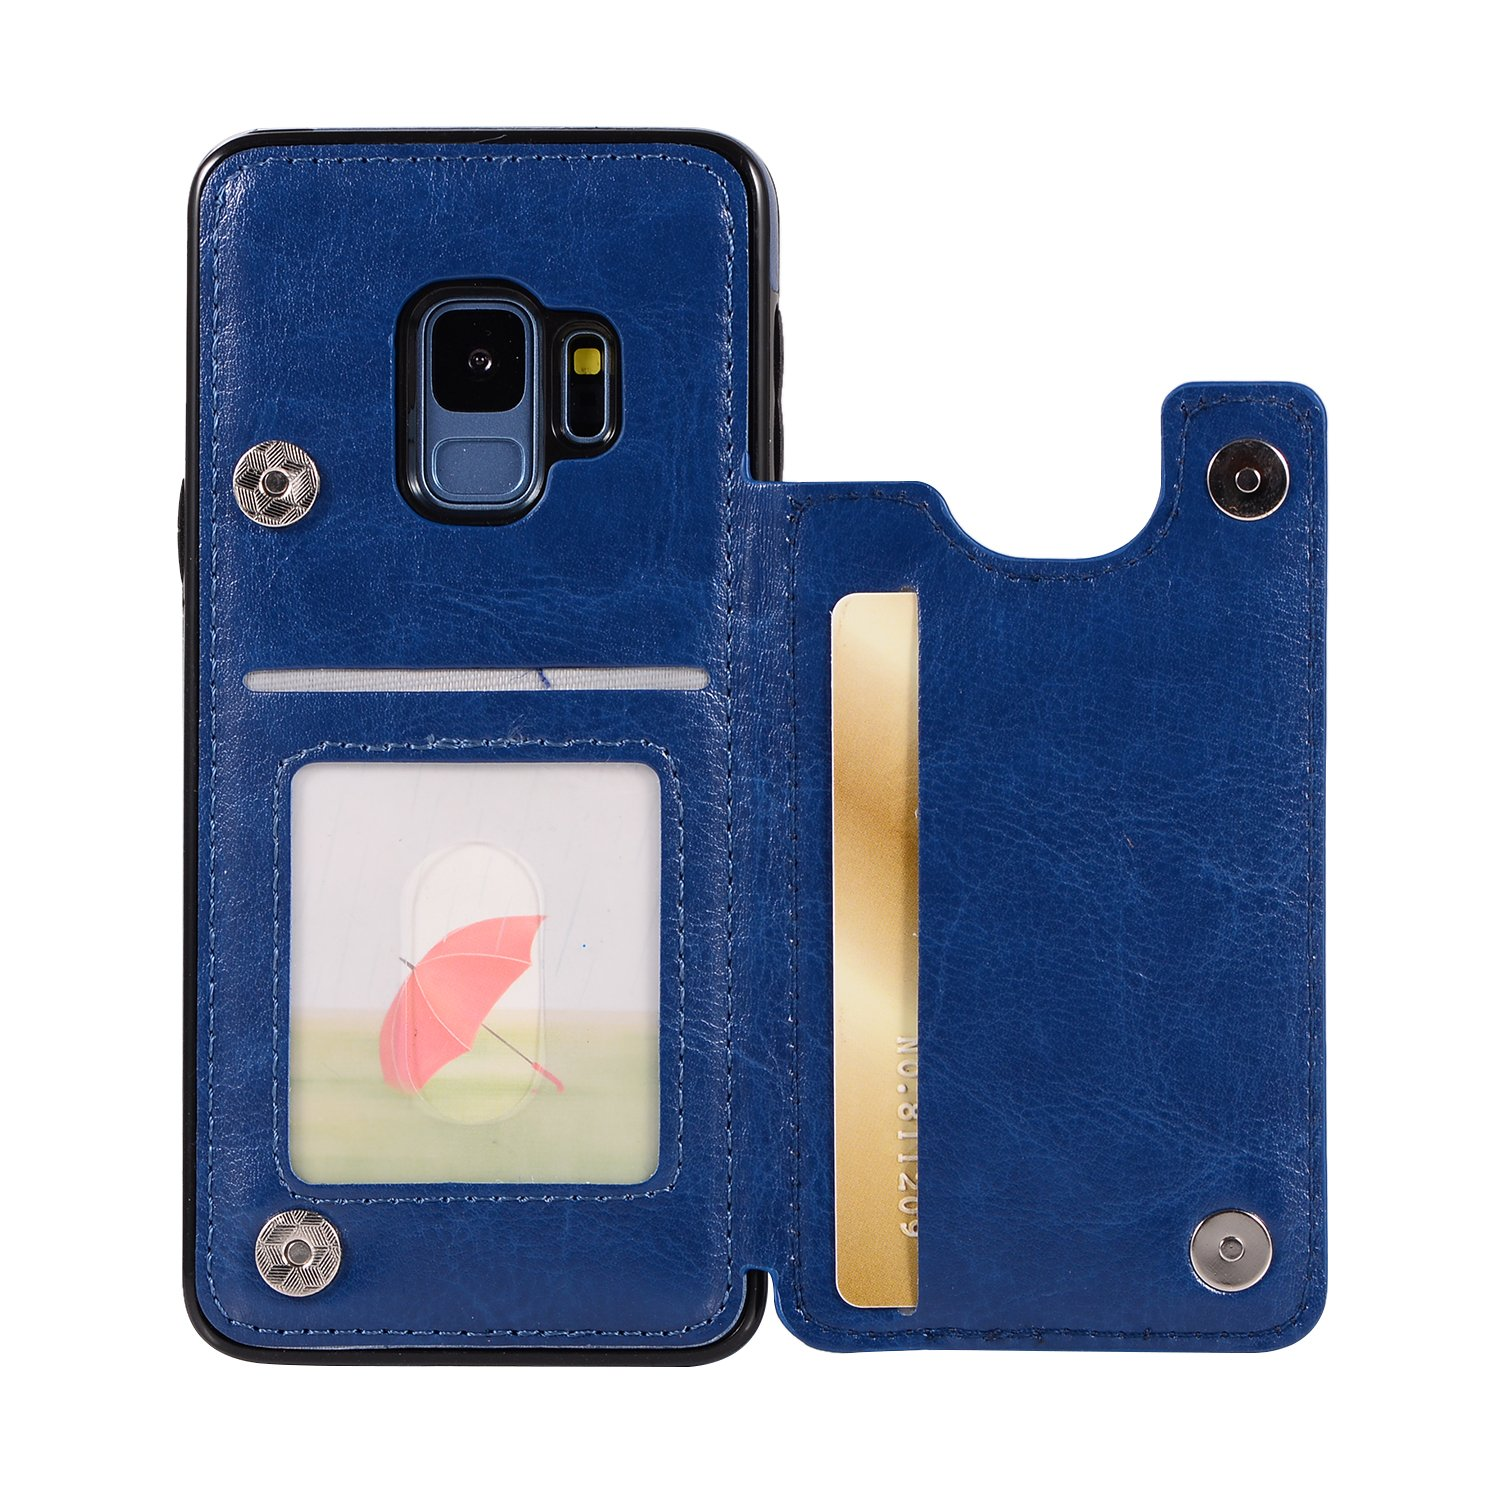 Samsung Galaxy S9 Case Retro PU Leather Samsung Galaxy S9 Phone Wallet Case Multi Card Slots Holders Shockproof Flip Protective Shell for Samsung Galaxy S9 Case (Blue)